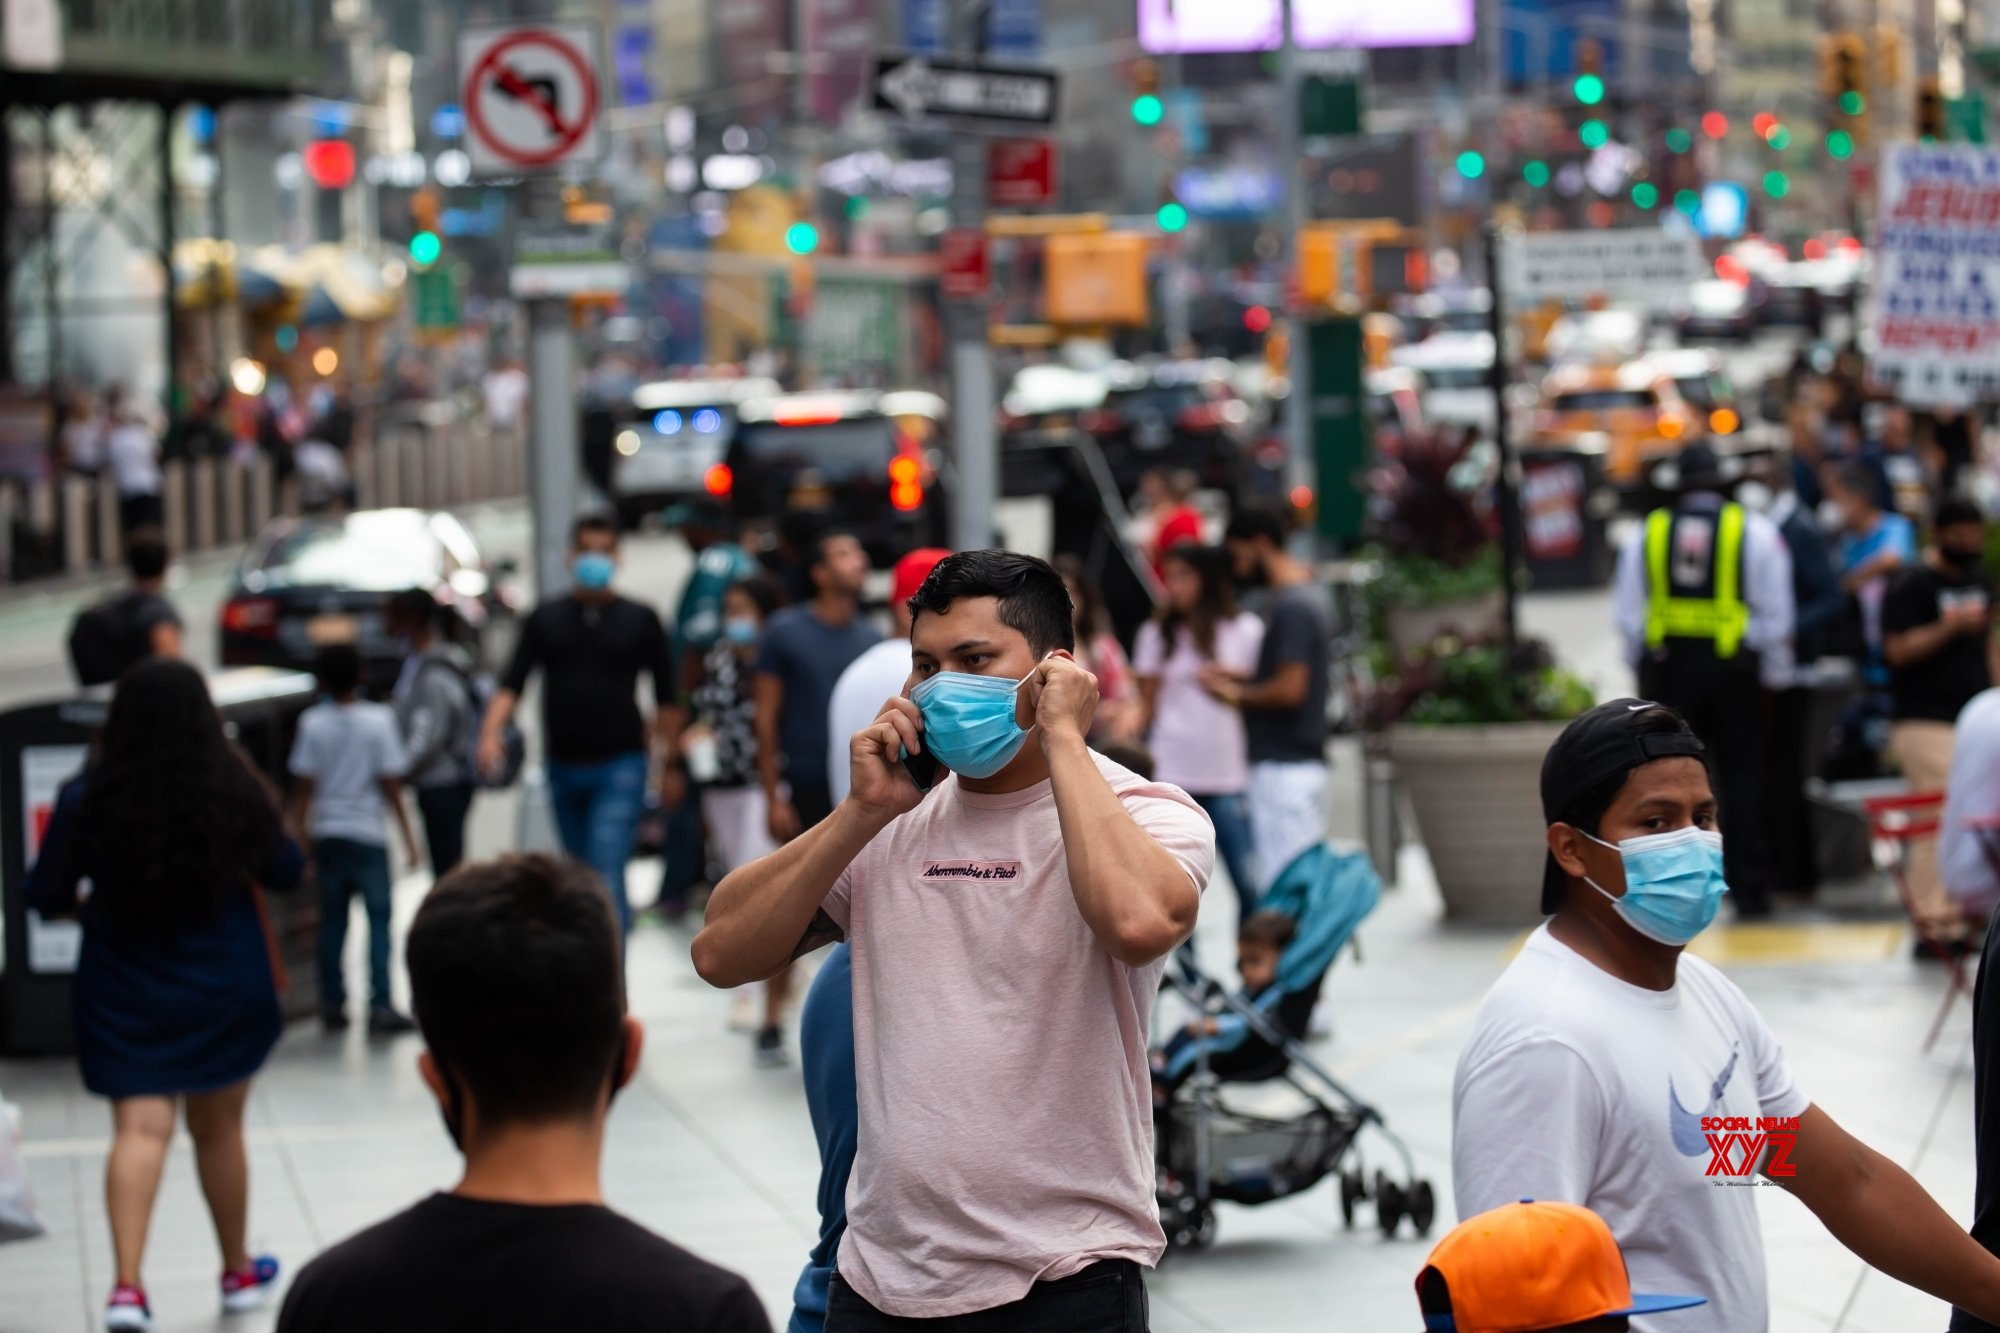 Scientists estimate risk of airborne Covid-19 with mask usage